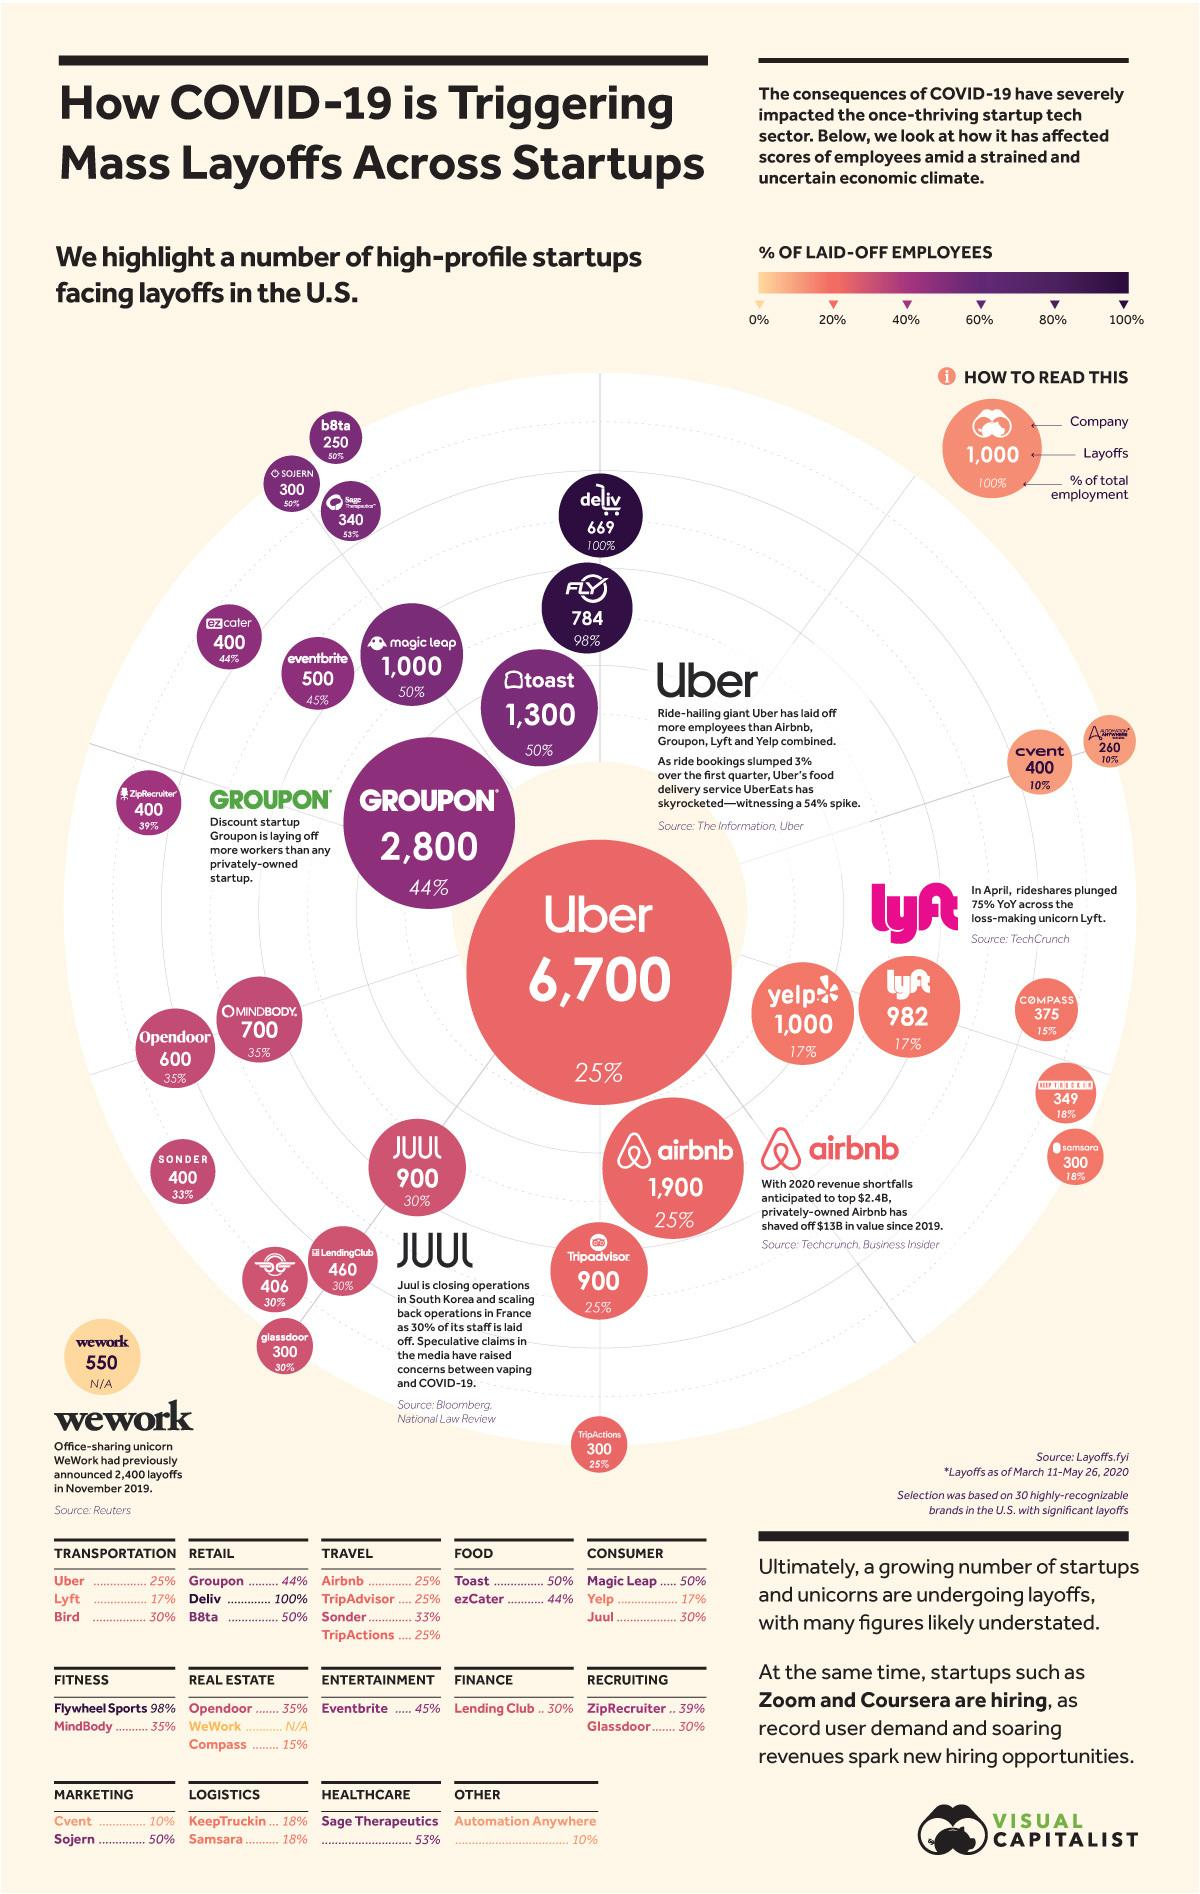 Visualizing Layoffs At Prominent Startups Triggered By COVID-19 1